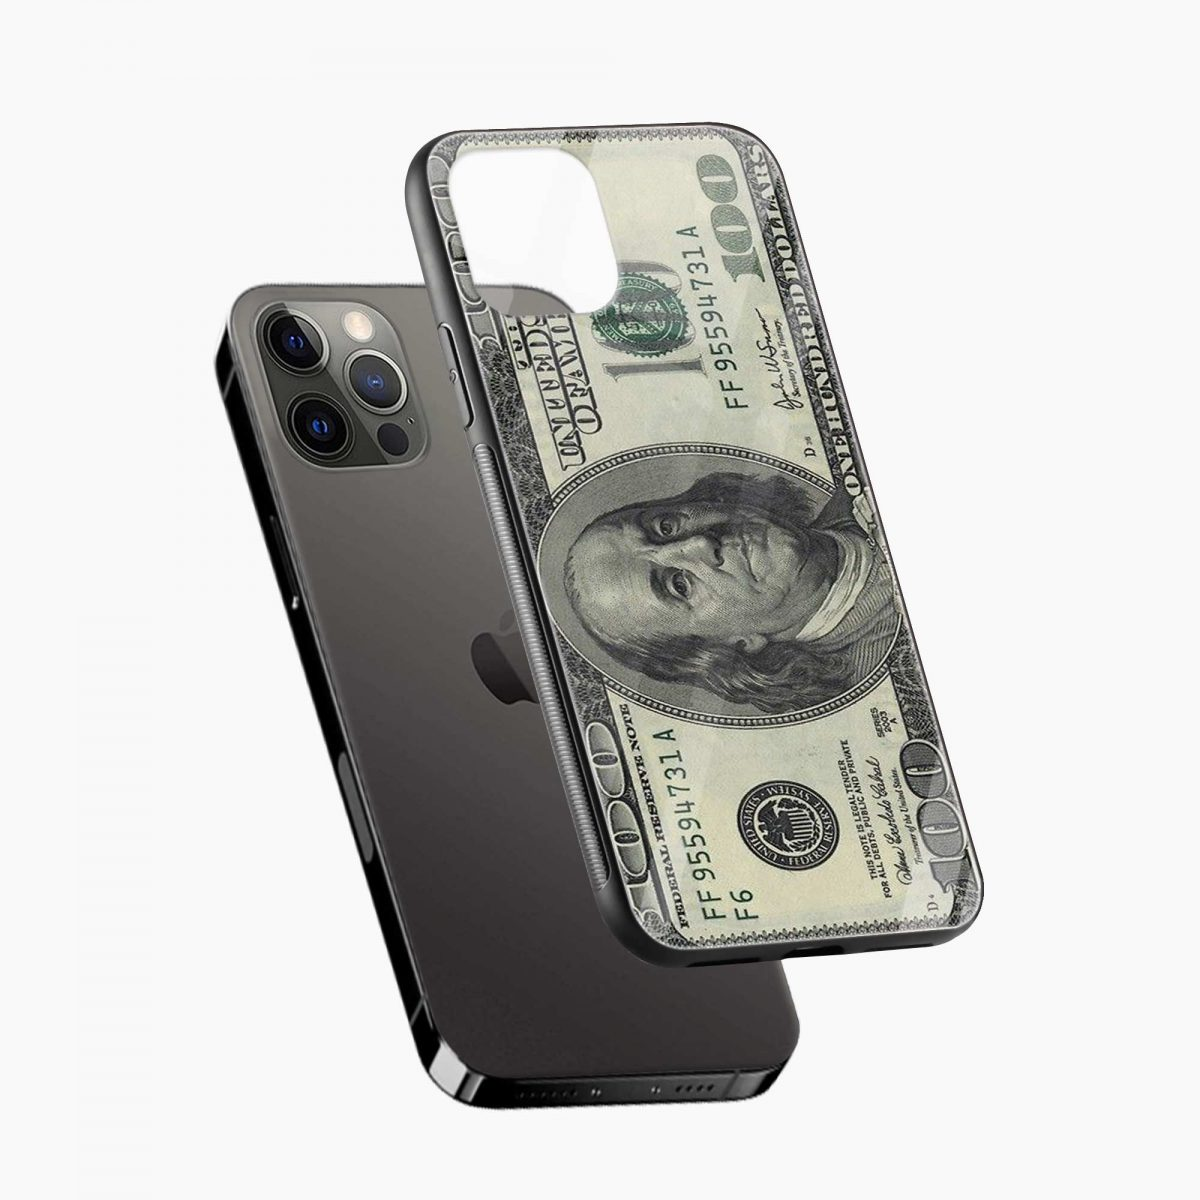 dollar iphone pro back cover diagonal view